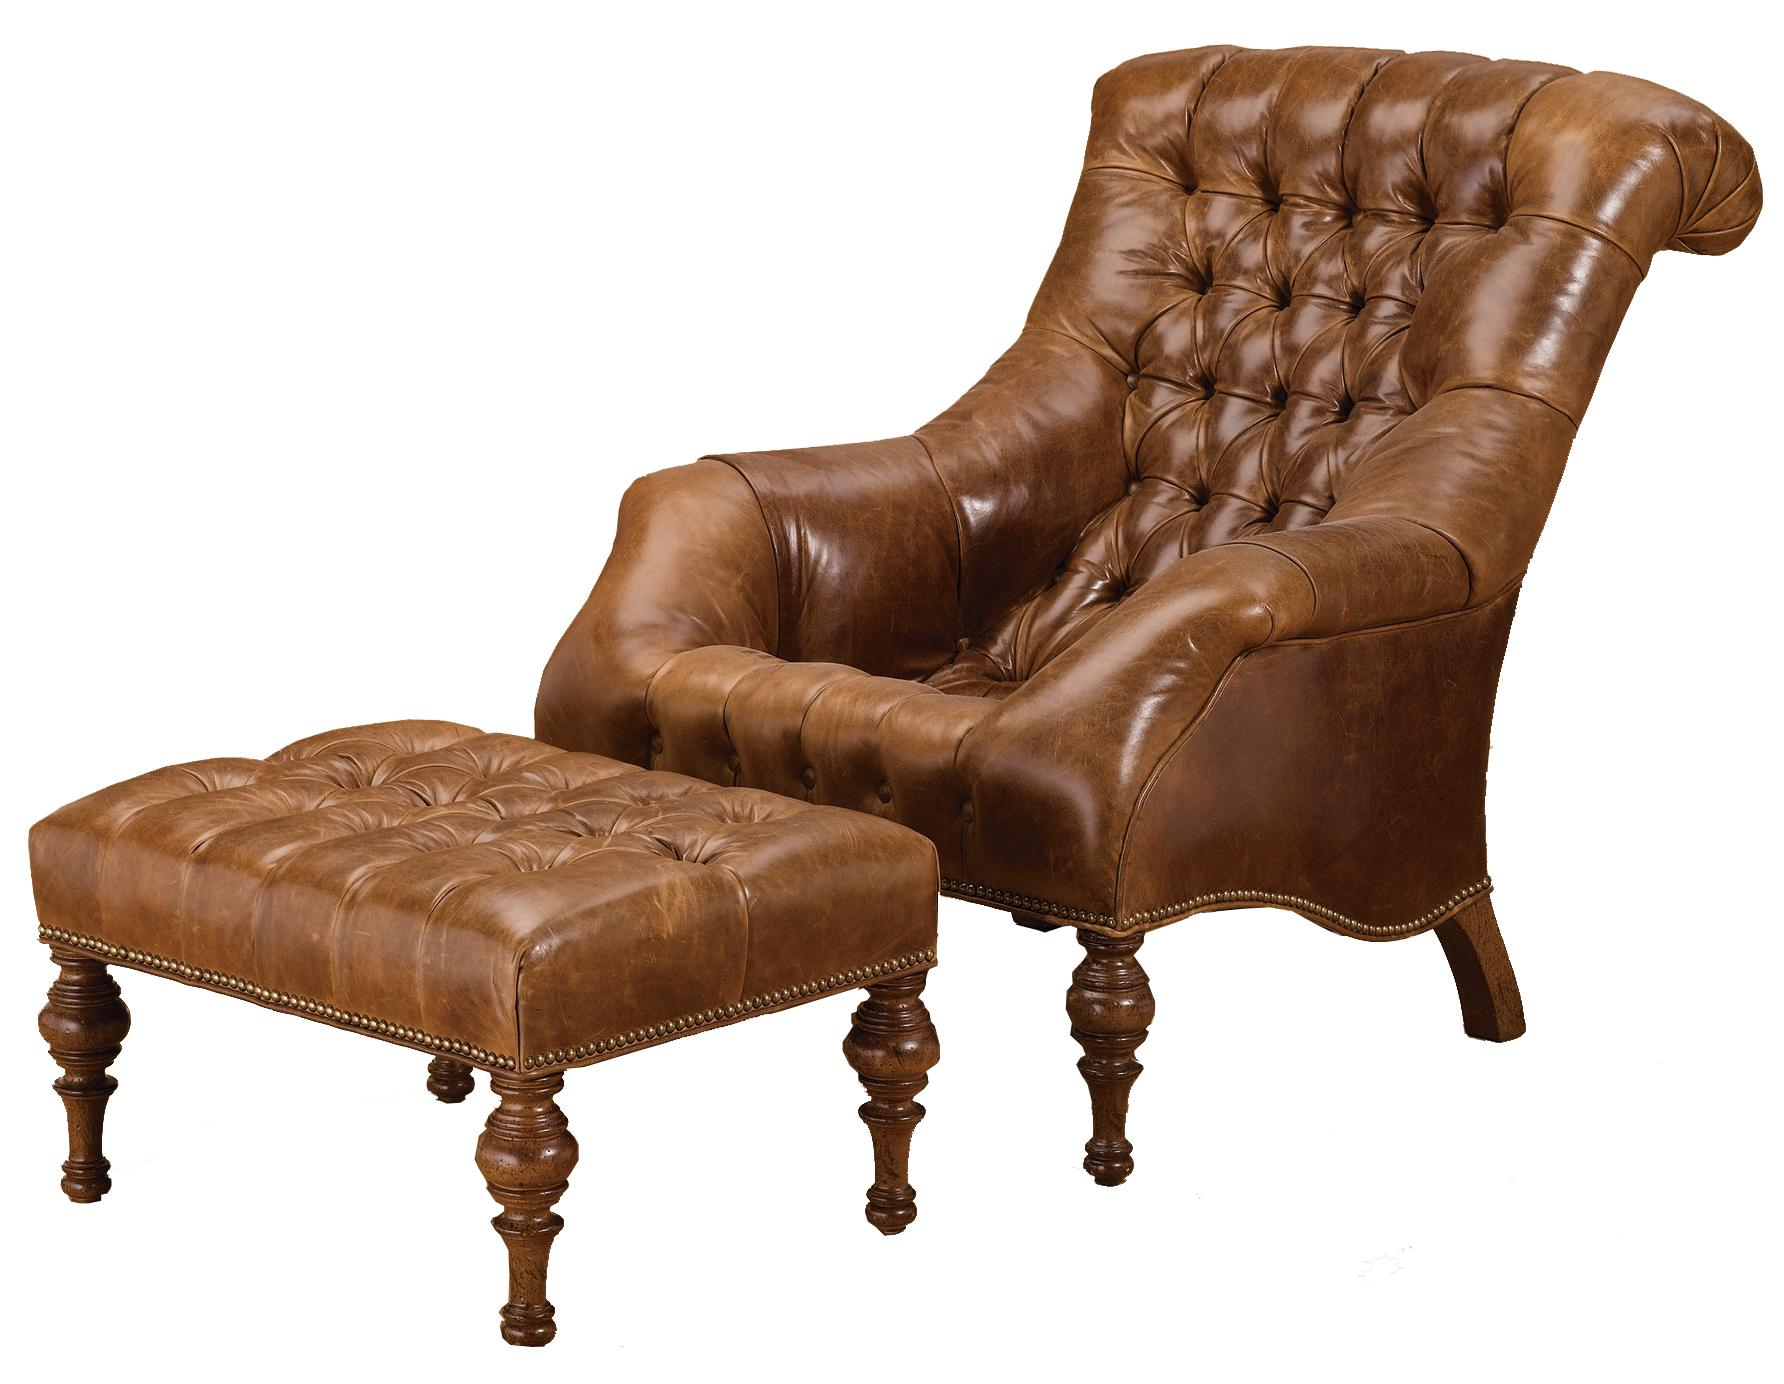 accent chairs with ottoman barcelona for sale wesley hall and ottomans traditional